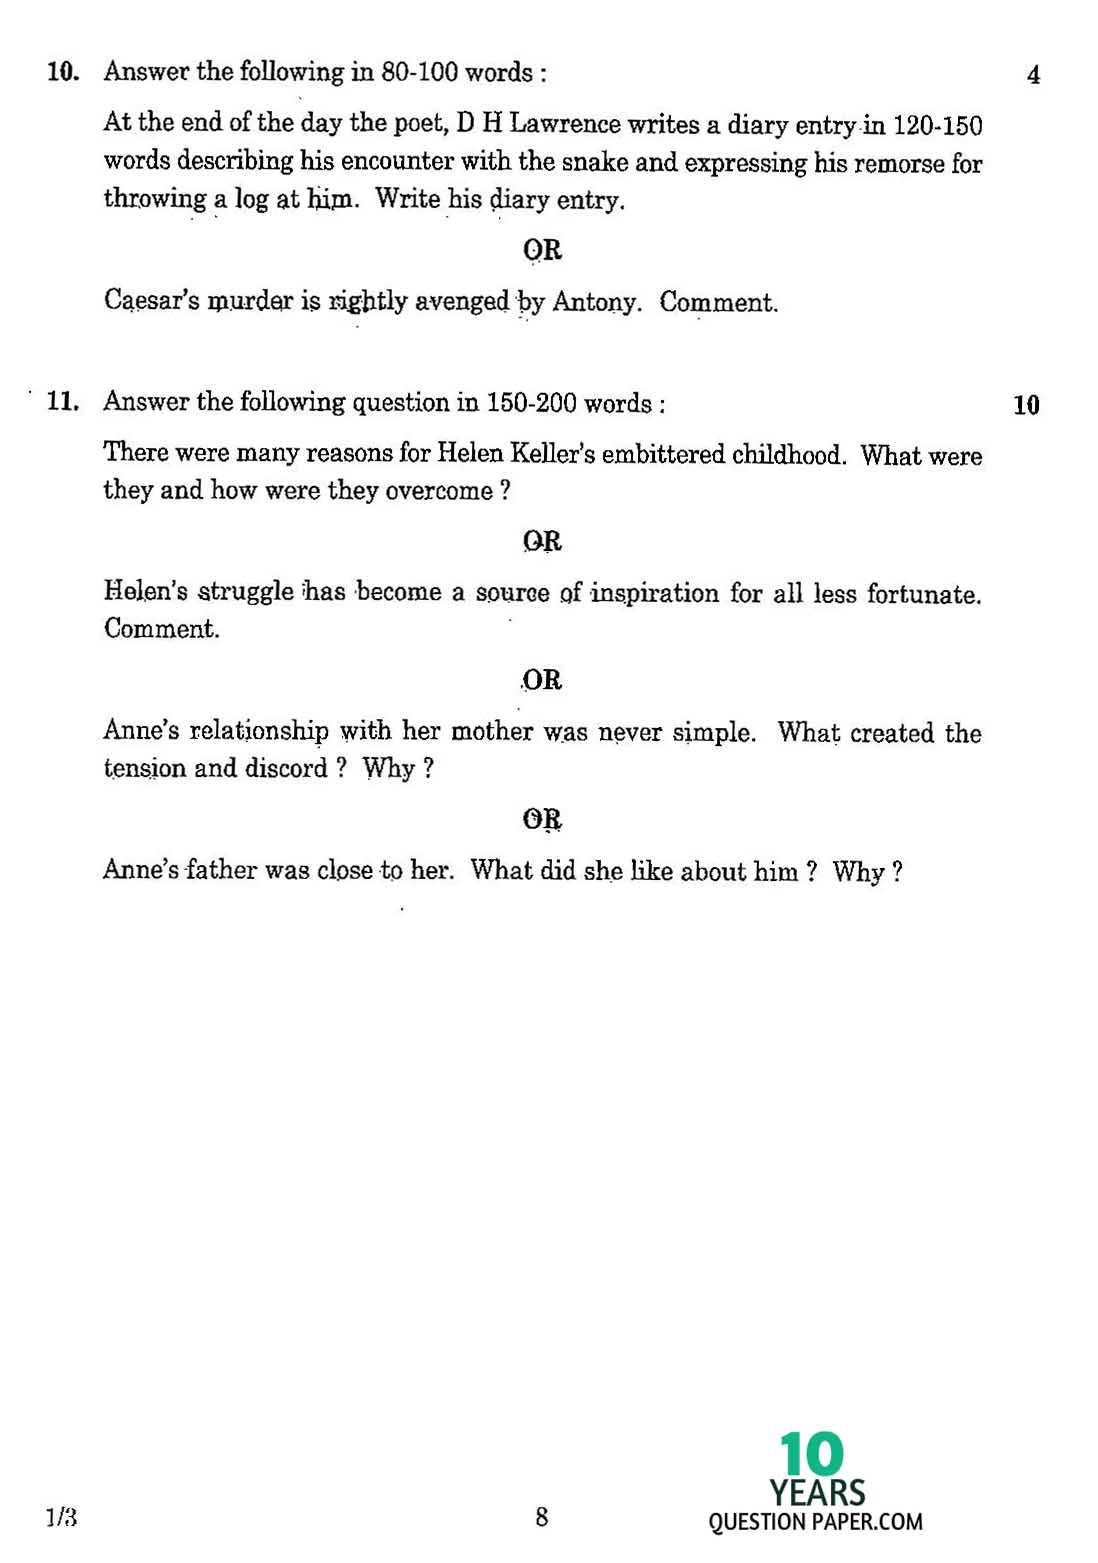 cbse class 10th 2016 English question paper